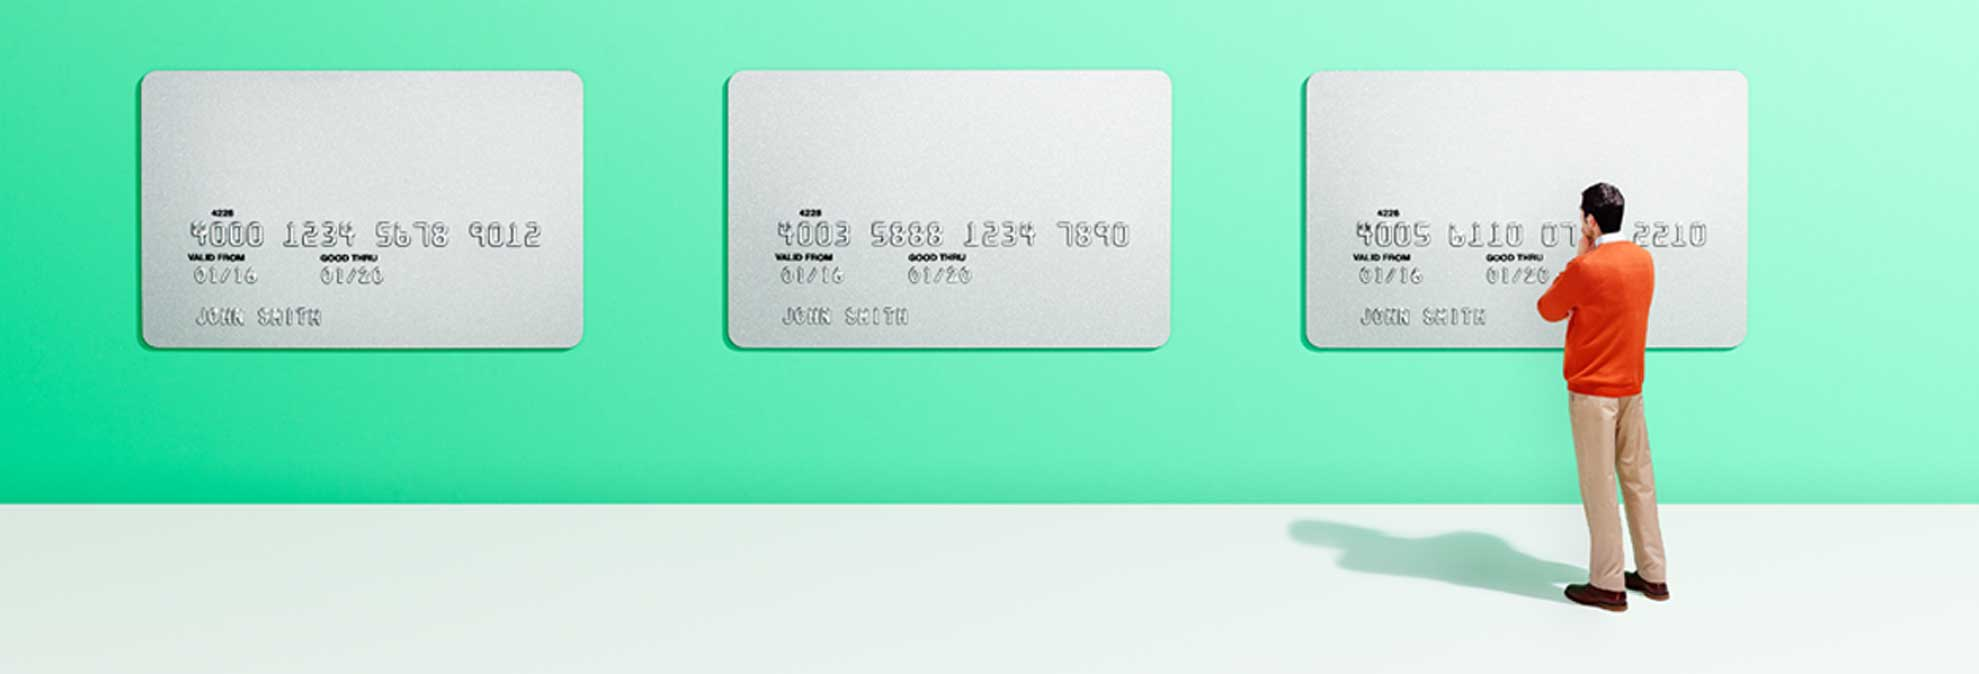 Best Credit Card Buying Guide - Consumer Reports